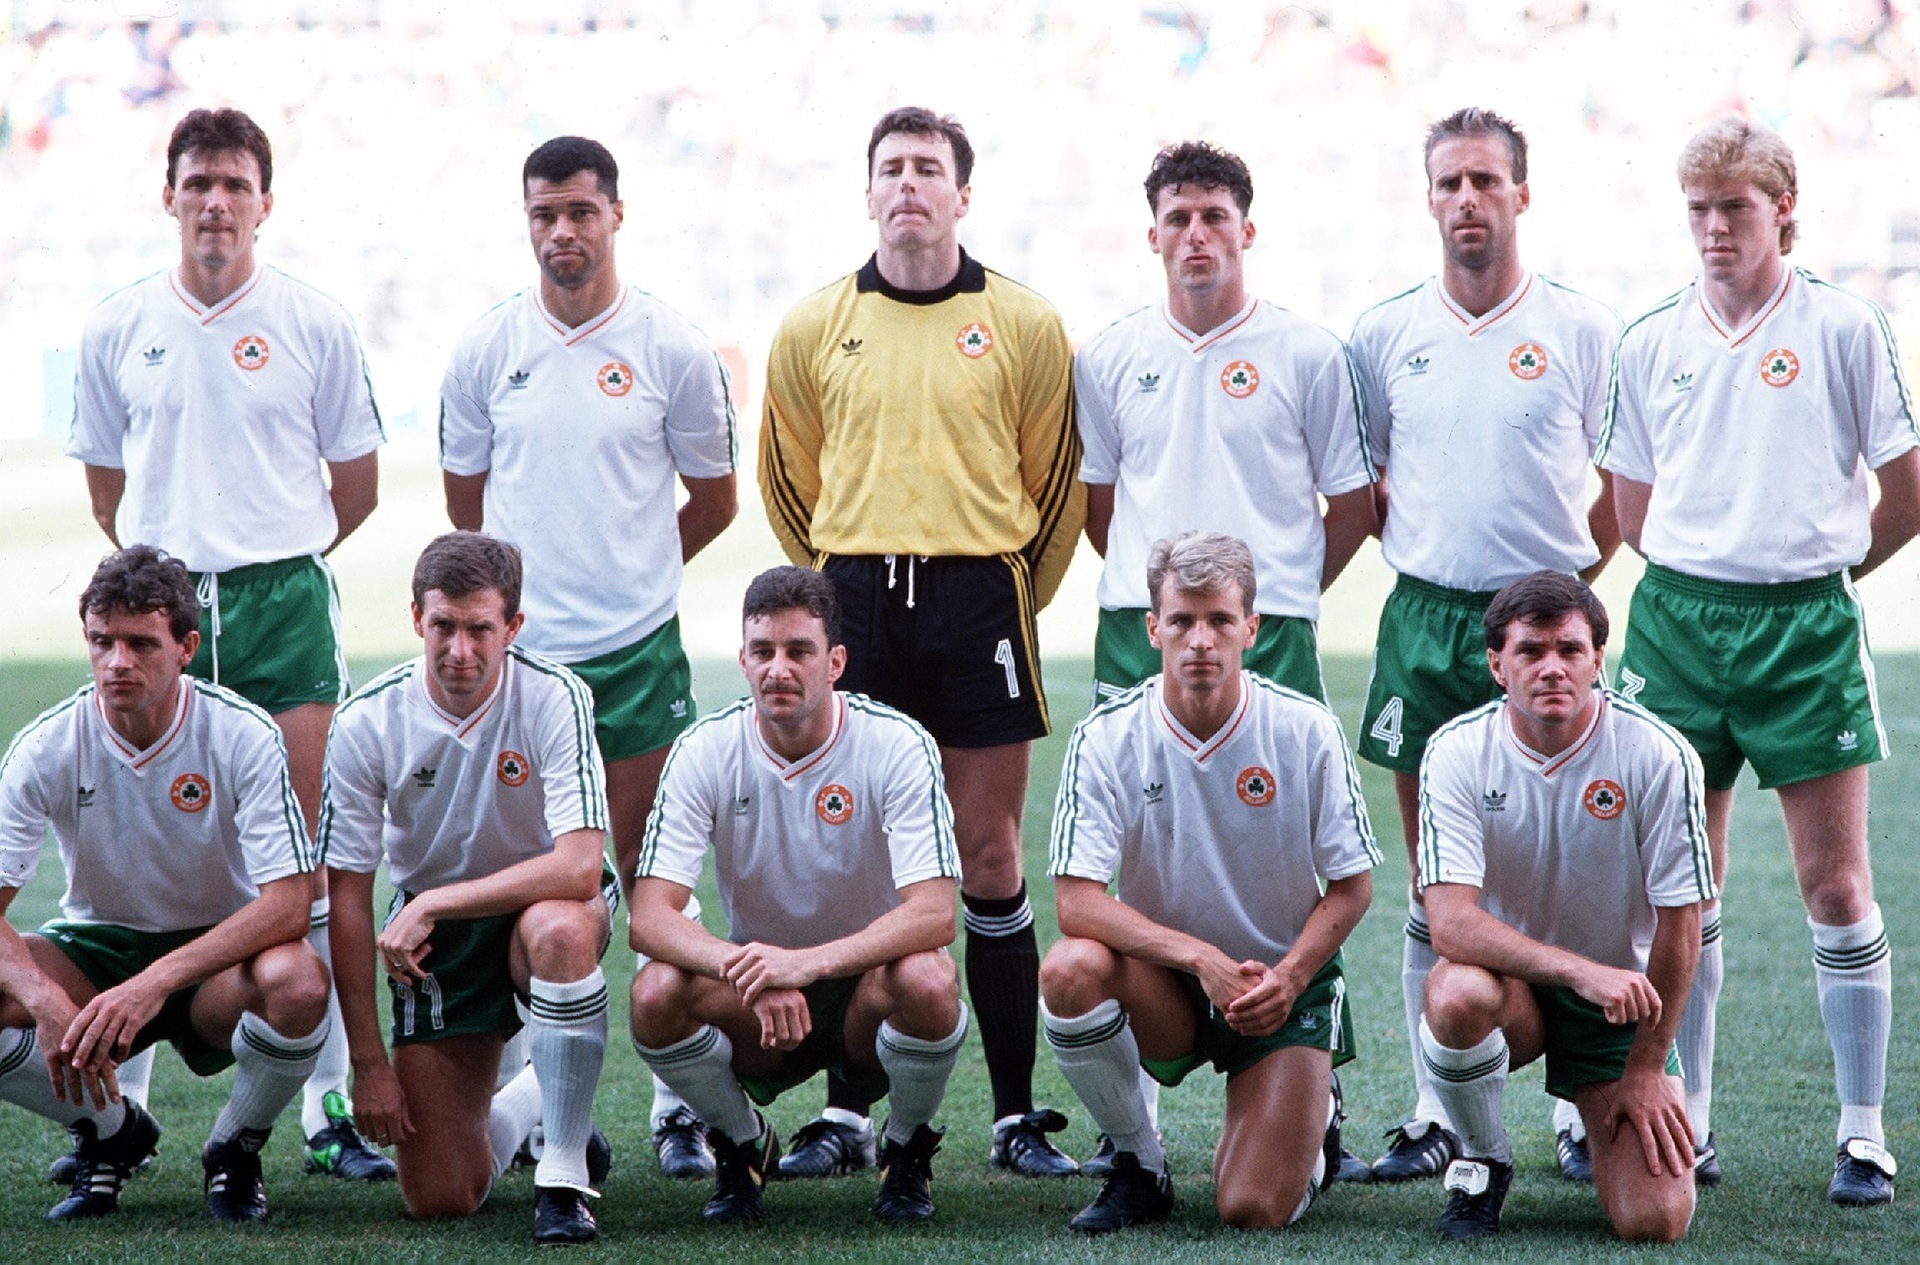 Ireland-1990-adidas-world-cup-away-kit-white-green-white-line-up.jpg